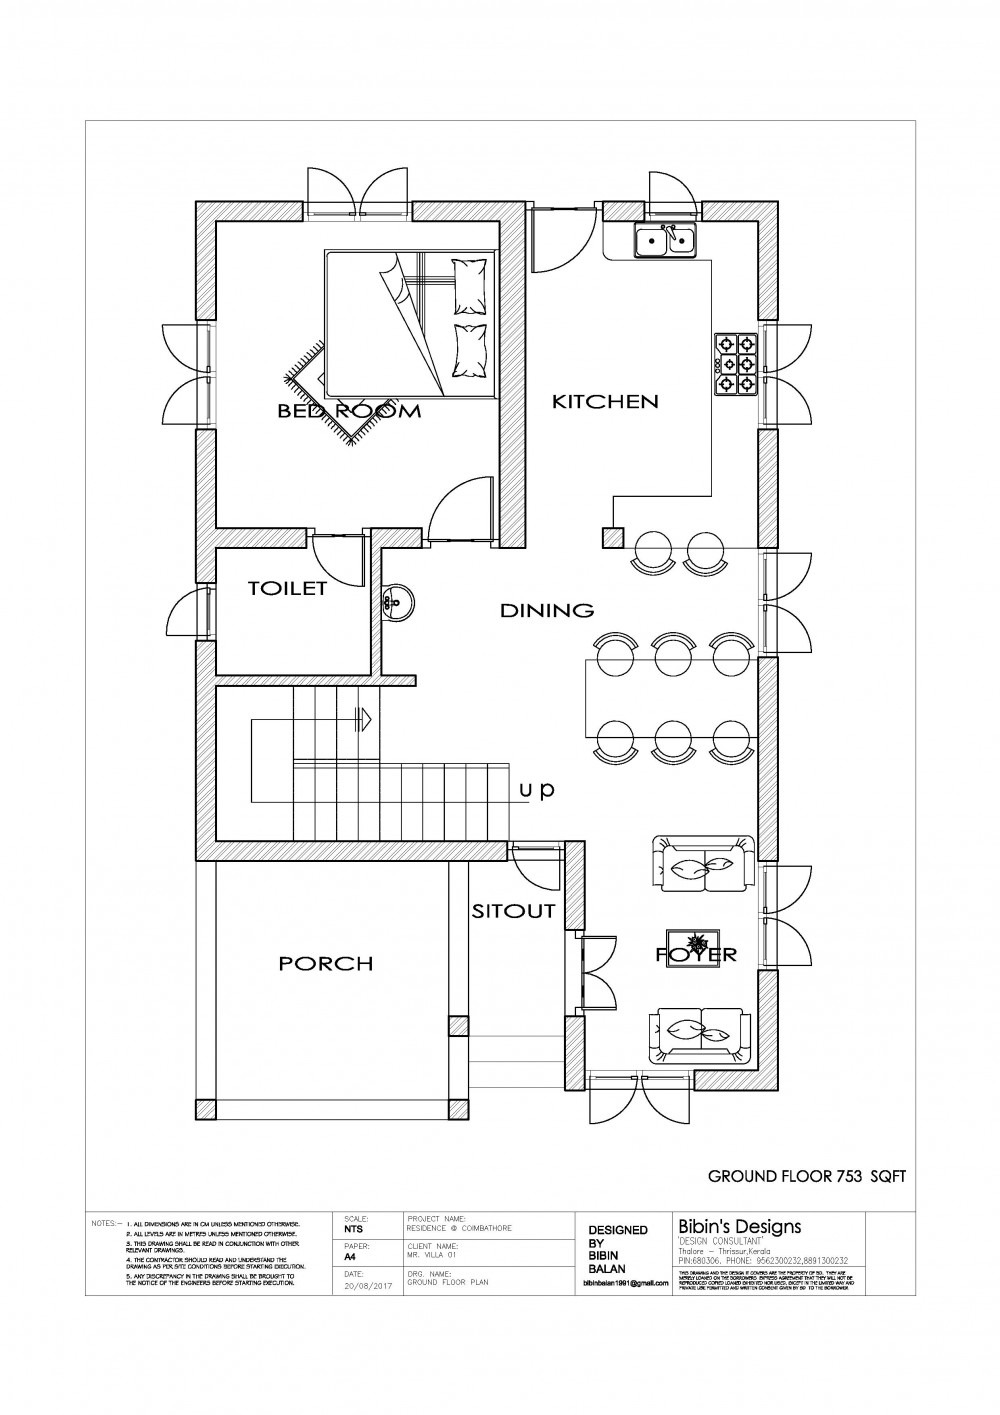 Free House Plans with Photos Luxury Free Kerala 1131 Sq Ft 2 Bedroom Simple House Plan